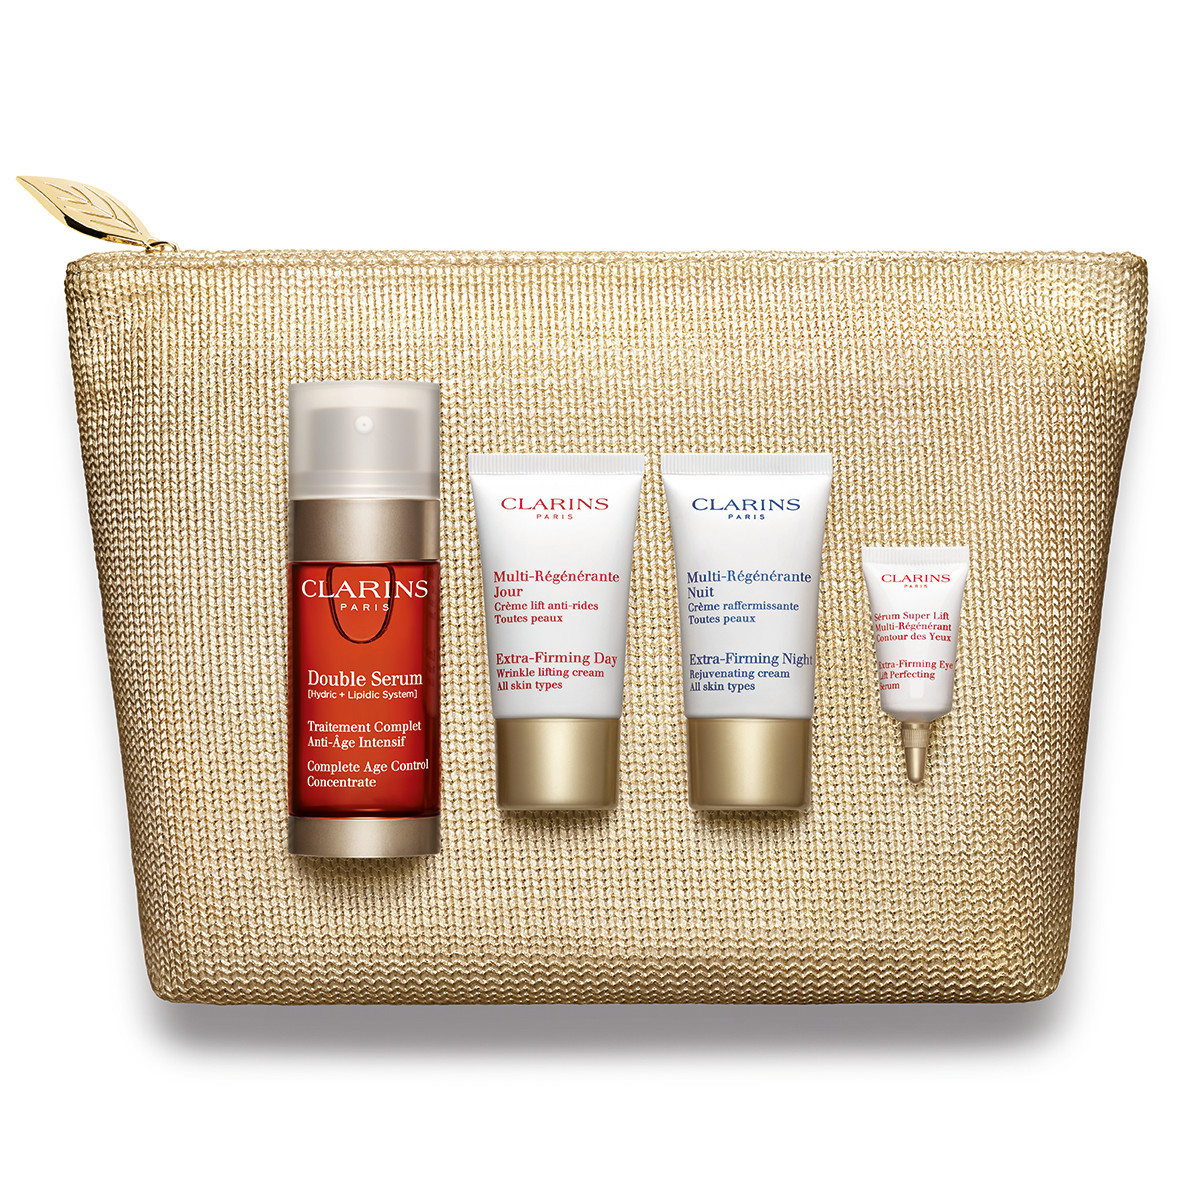 Clarins Coffrets available at Bath and Wells Beauty salons